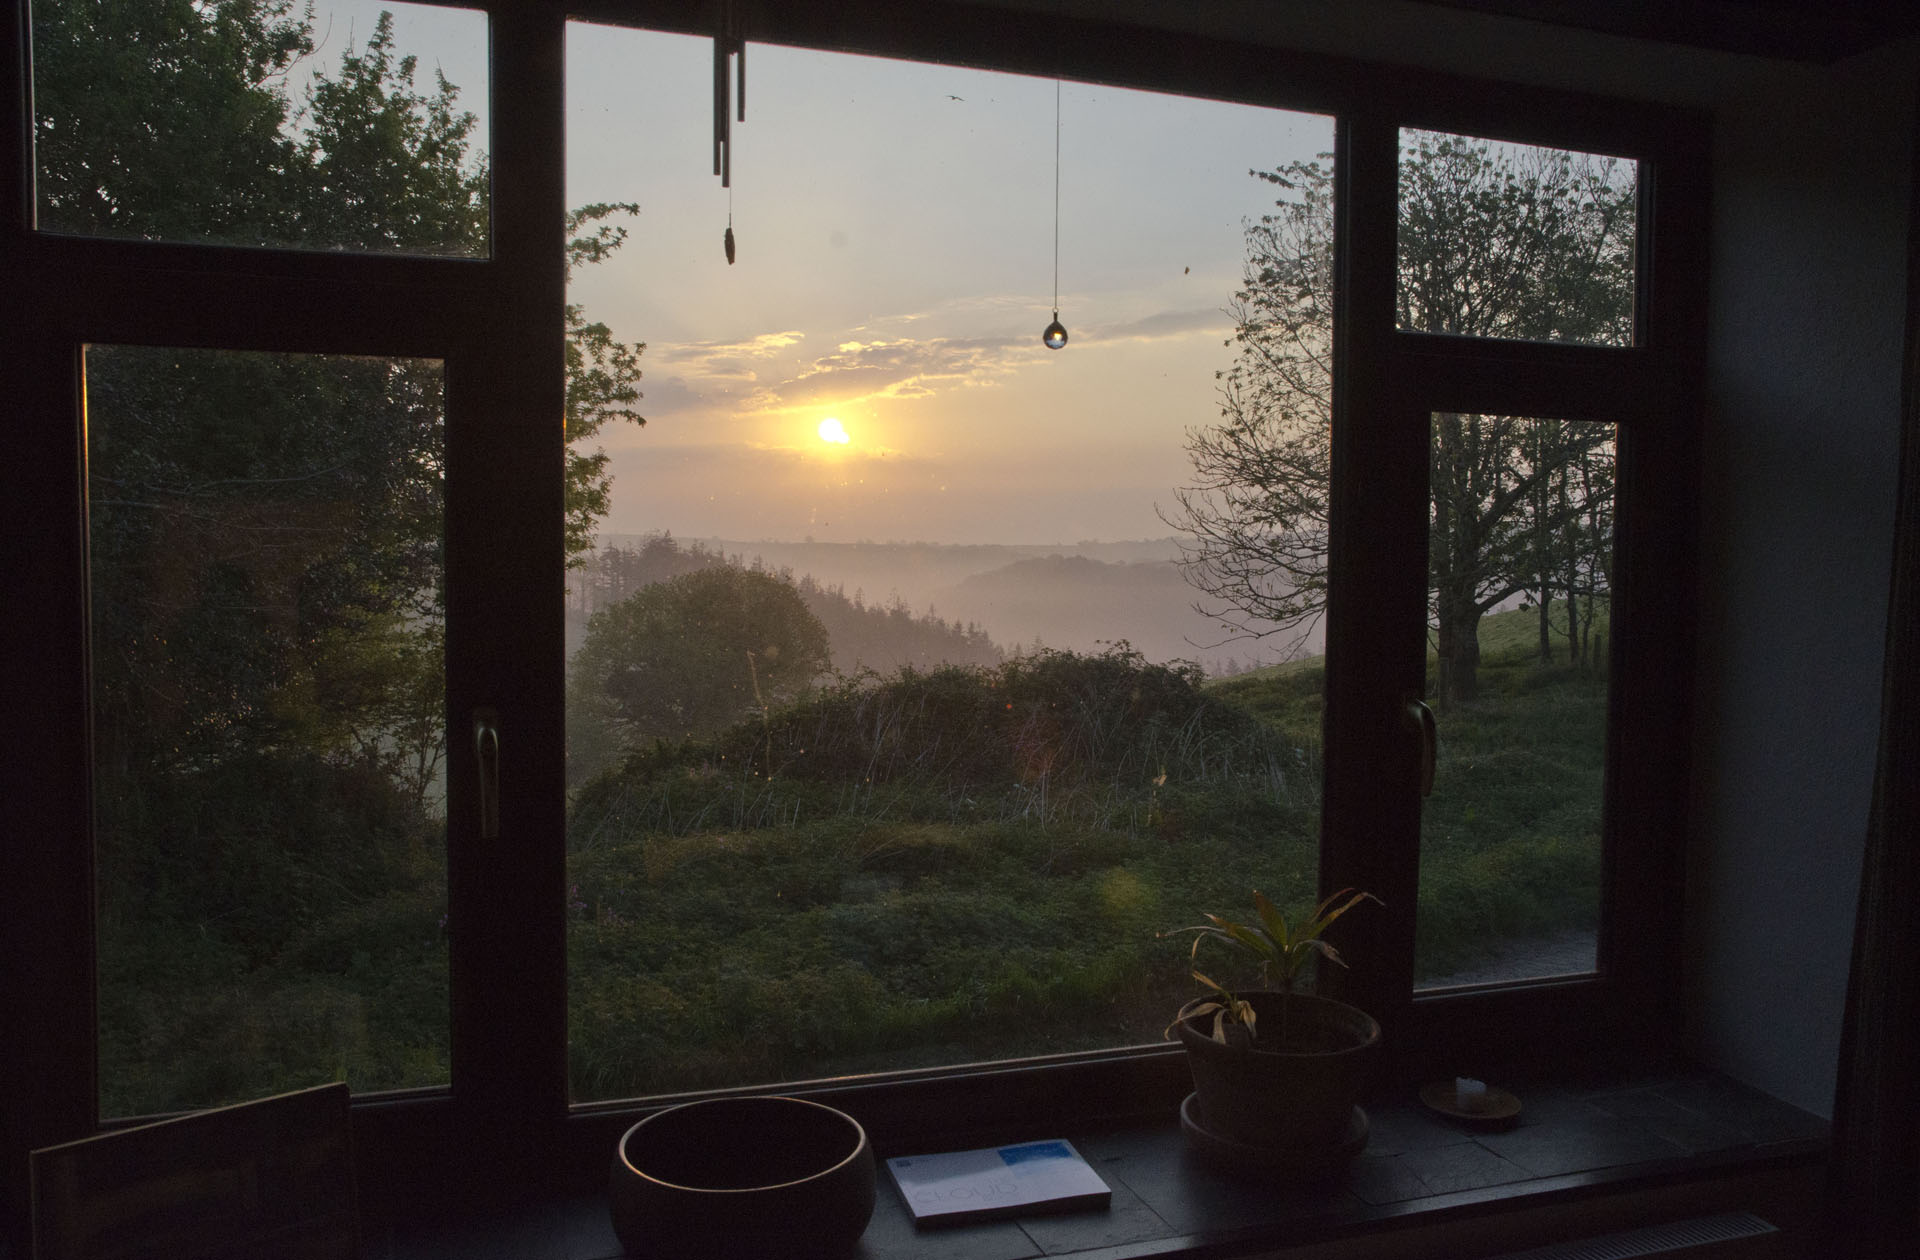 Sunrise from window